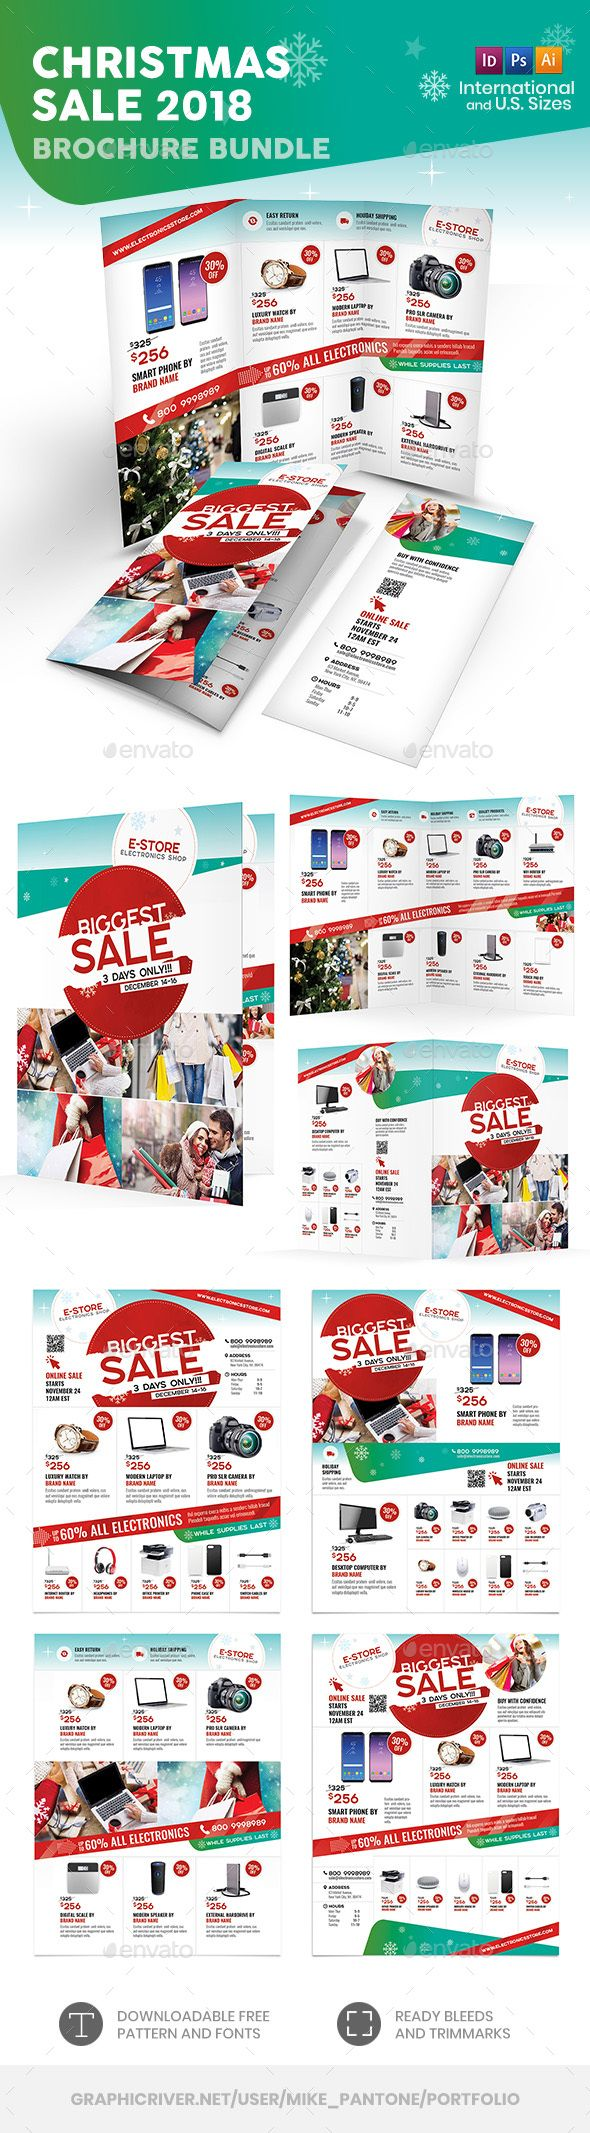 christmas sale brochure templates psd vector eps indesign indd ai